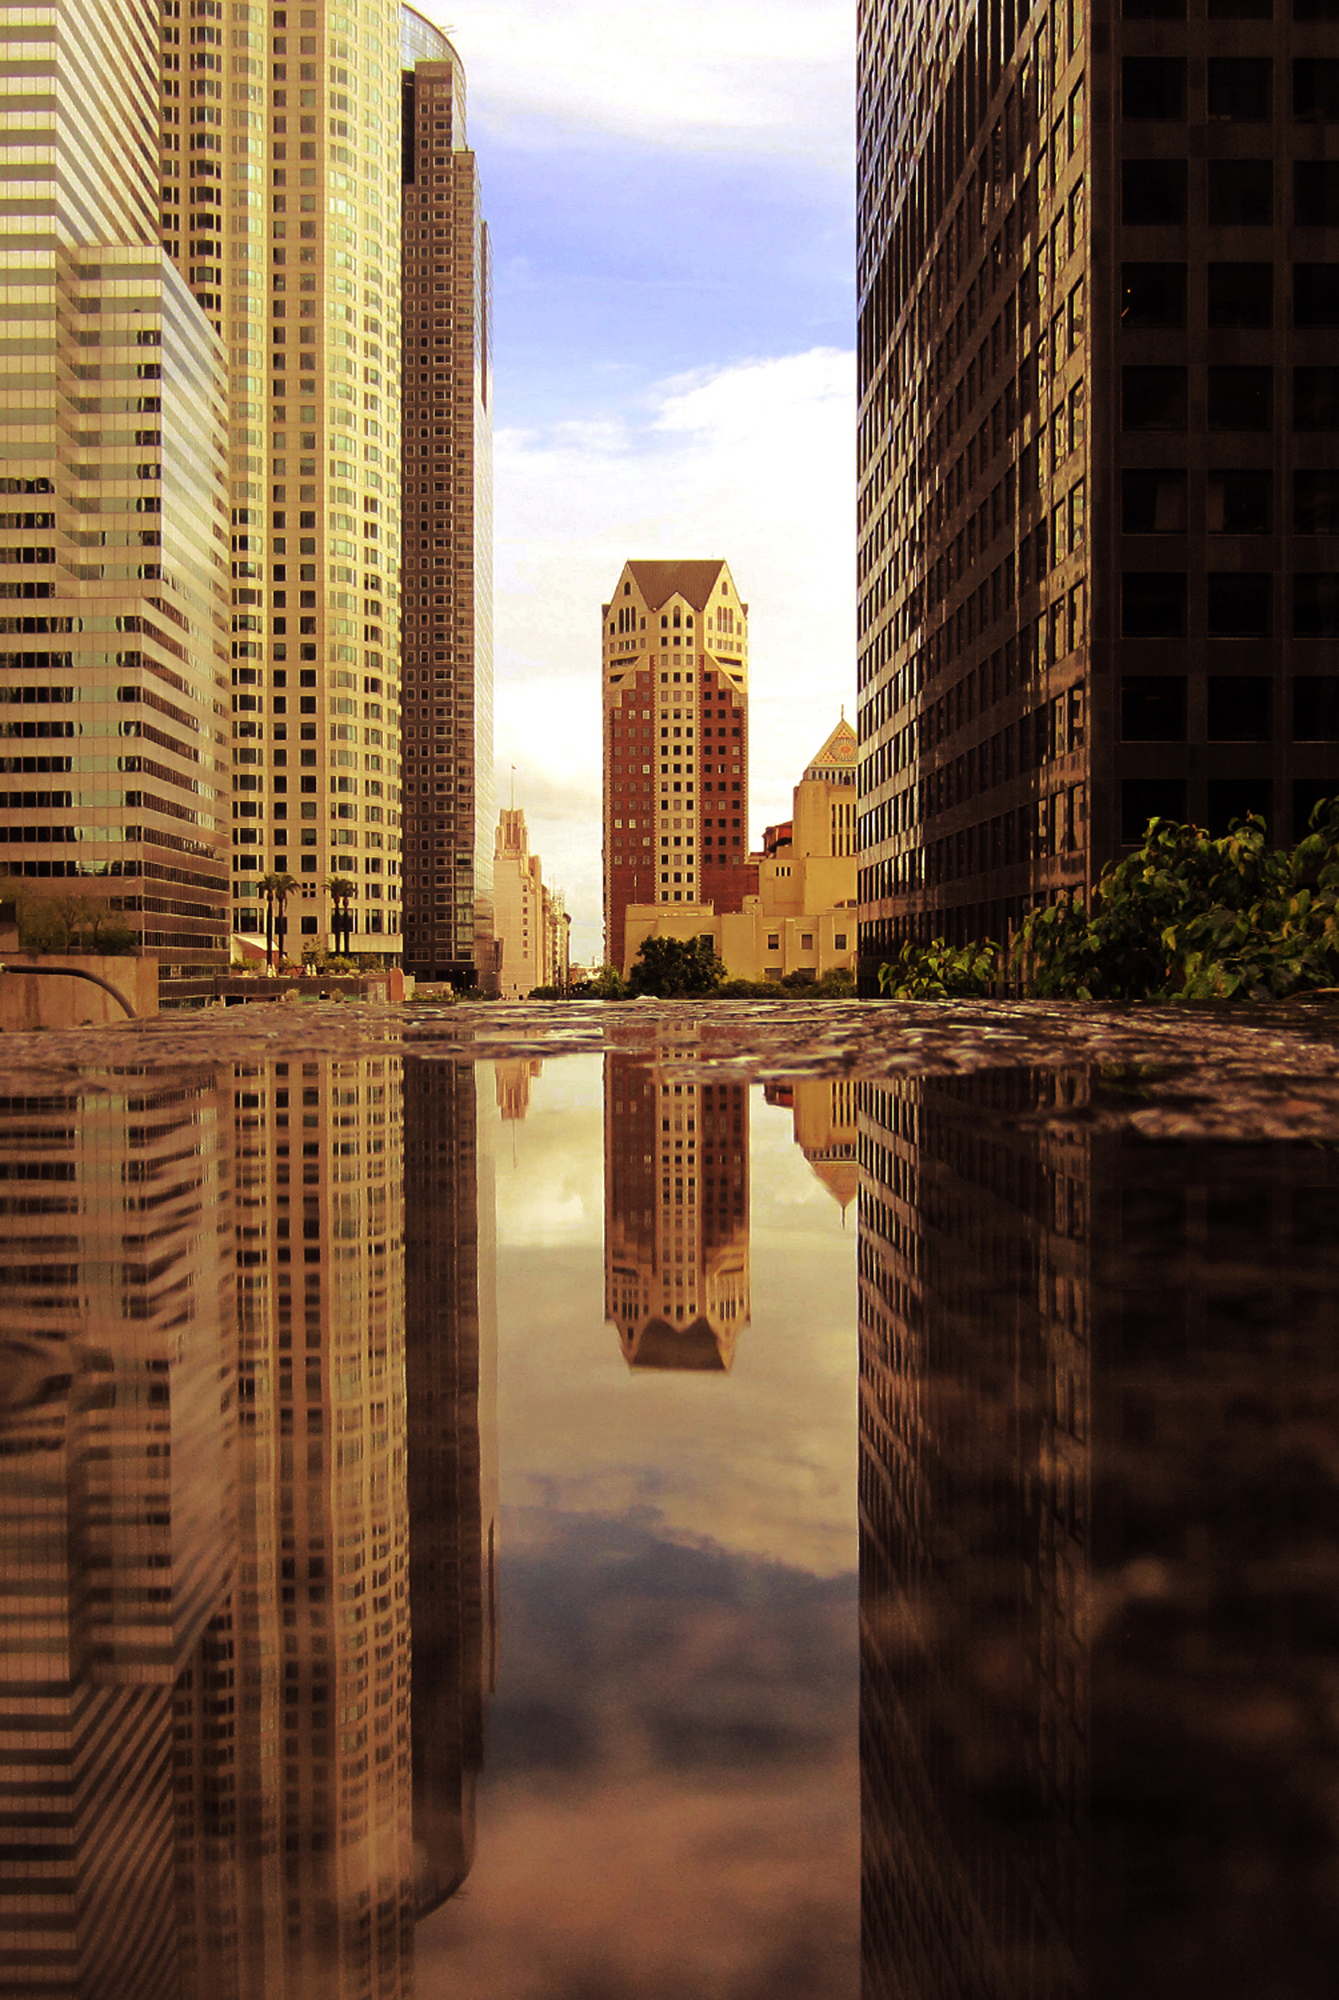 Cetywa_Powell_CityReflections